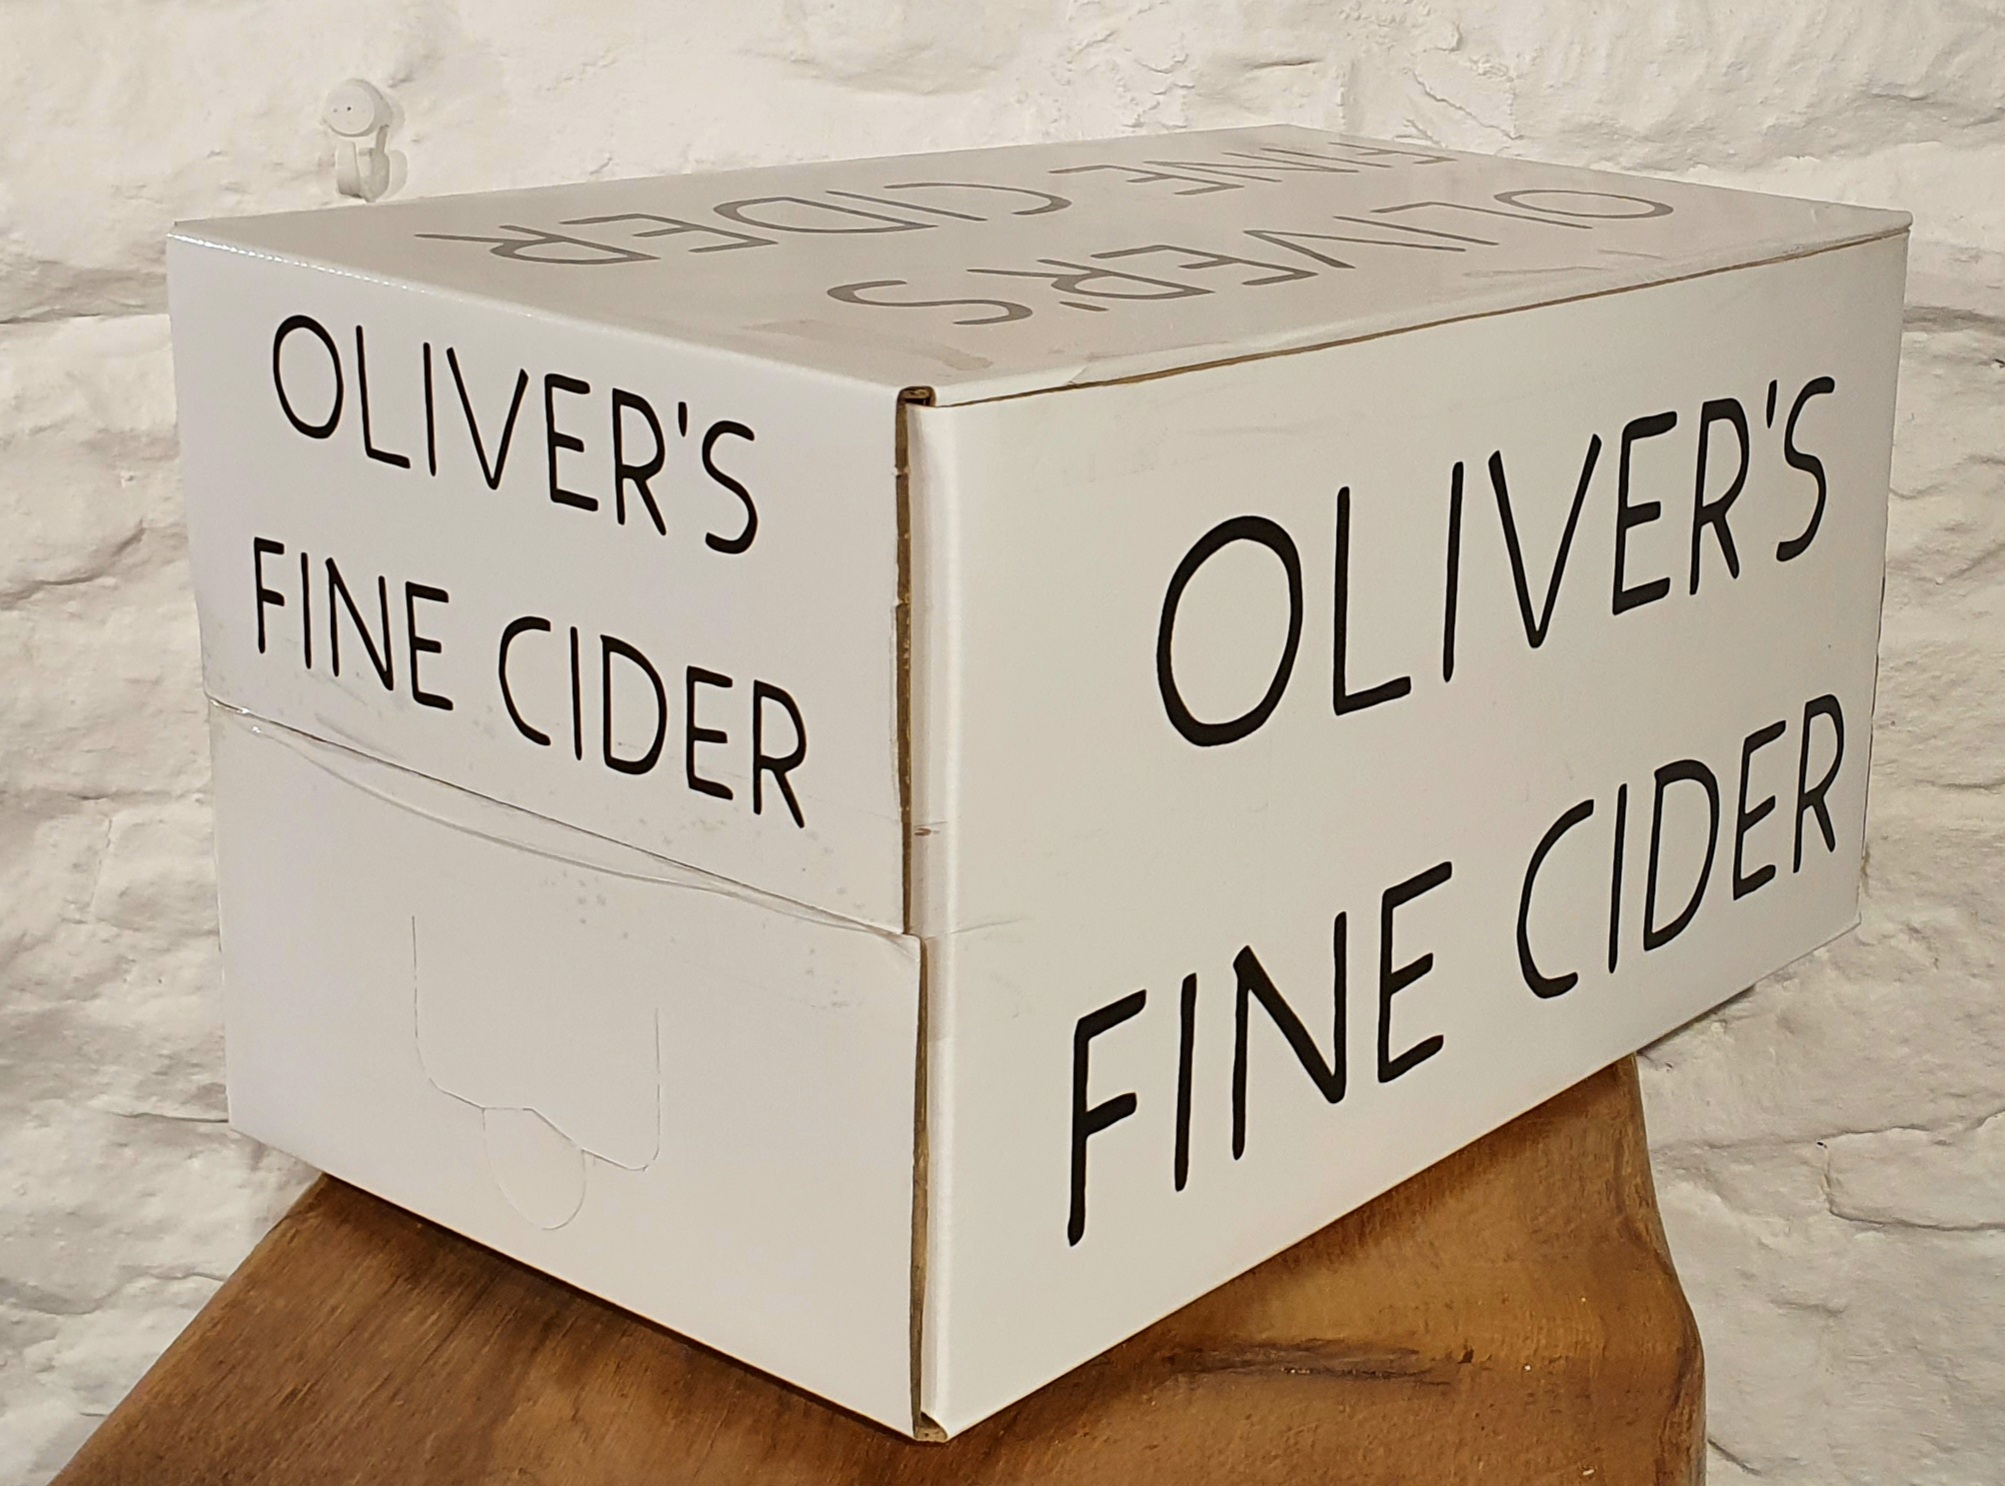 ANY DRAUGHT CIDER OR PERRY AVAILABLE AS 2 X 10 LITRE BIB